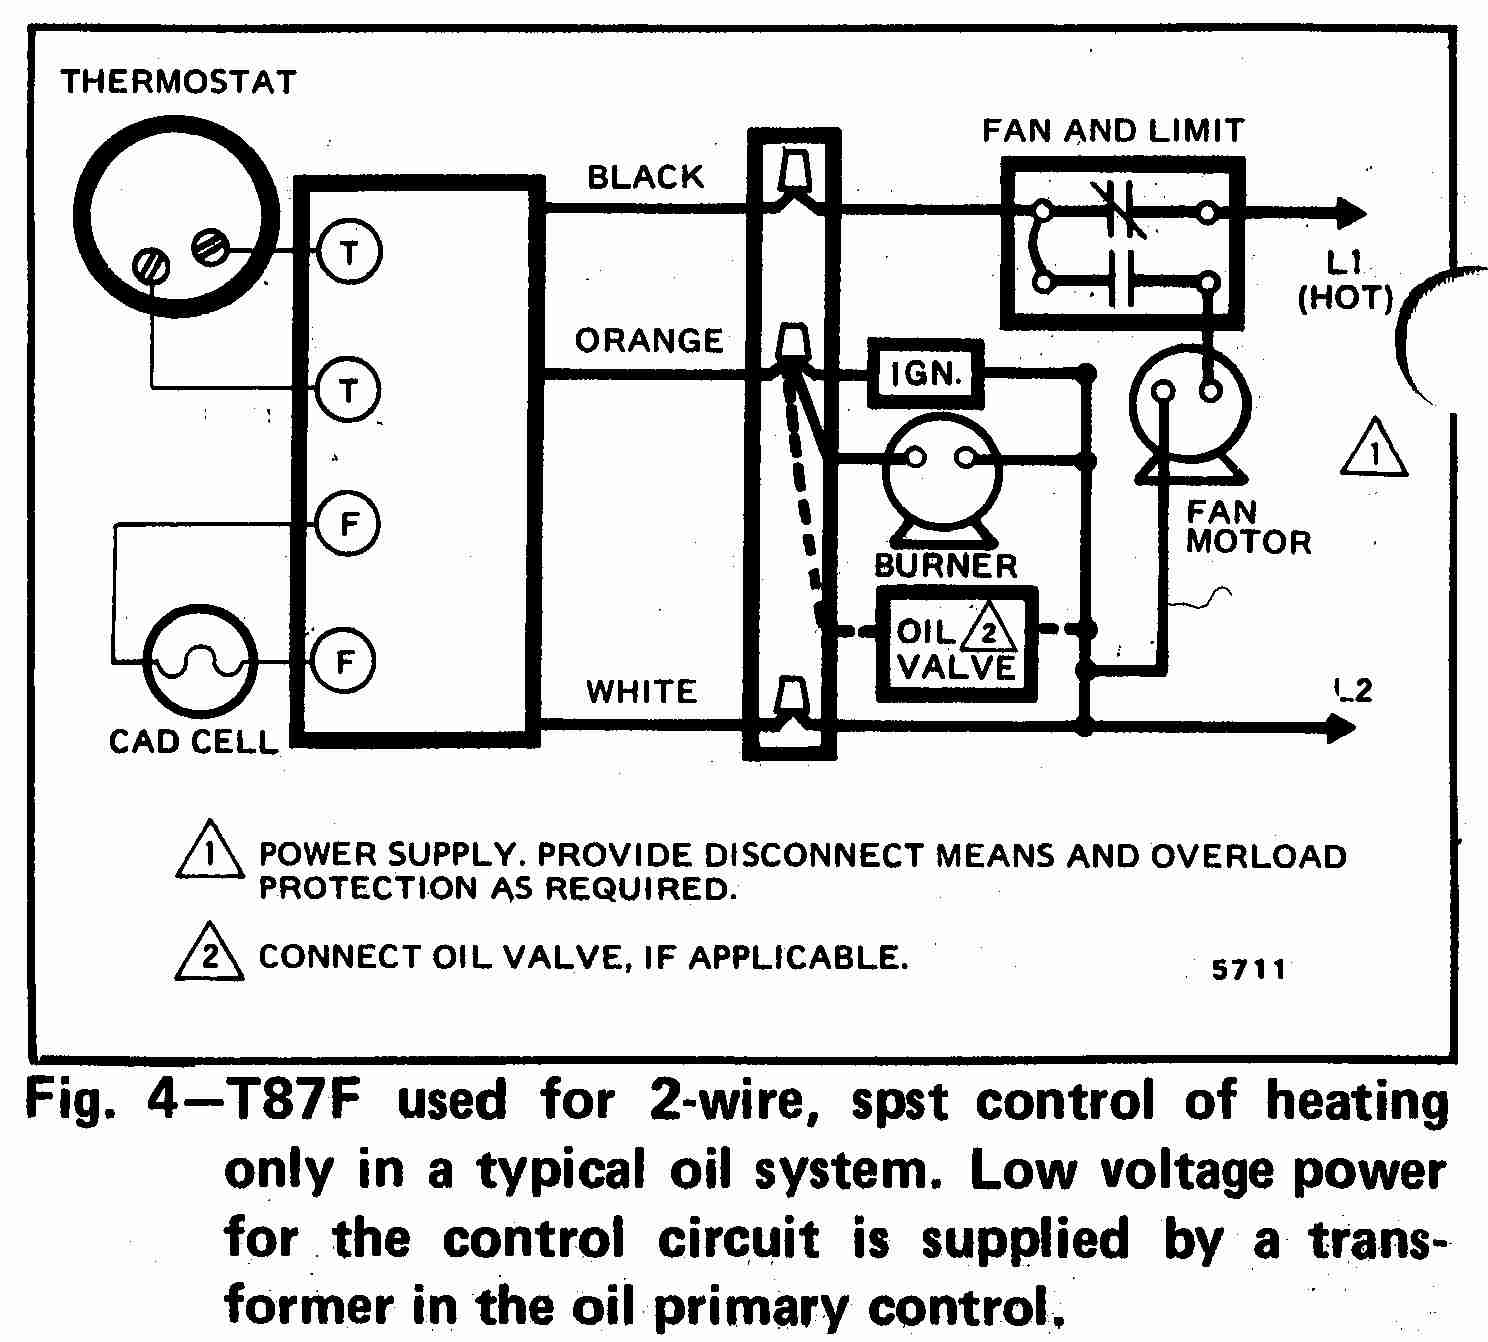 TT_T87F_0002_2W_DJF room thermostat wiring diagrams for hvac systems Gas Furnace Wiring Diagram at creativeand.co